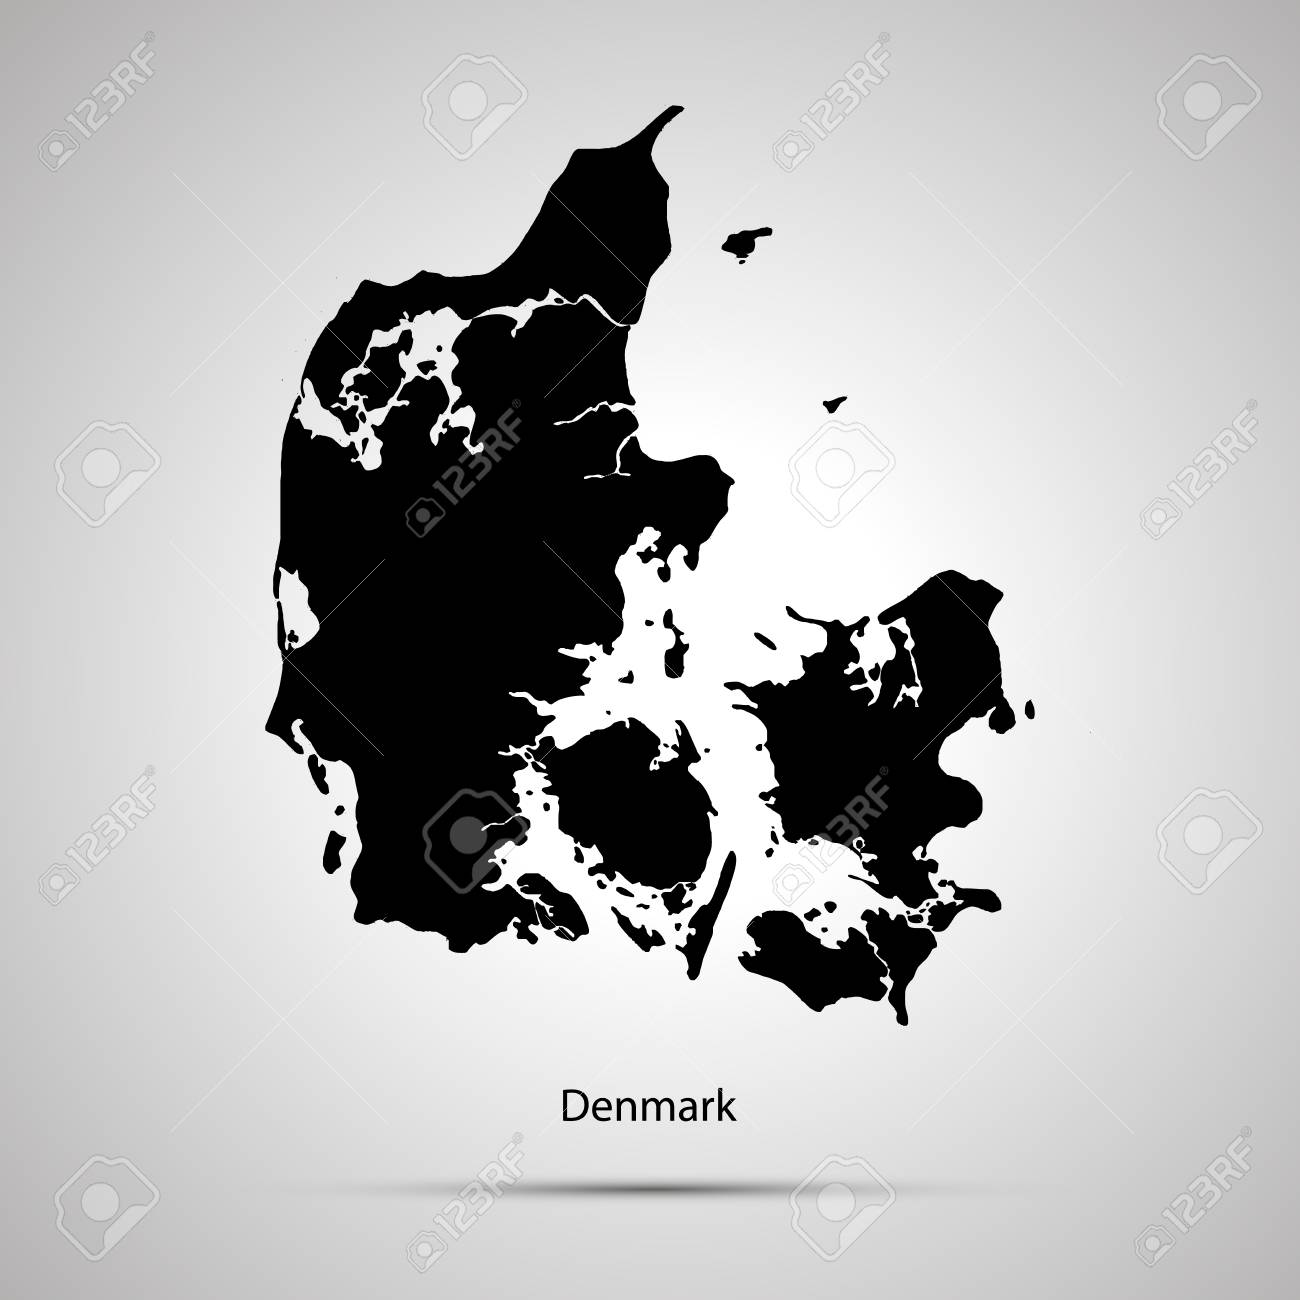 Denmark Country Map on